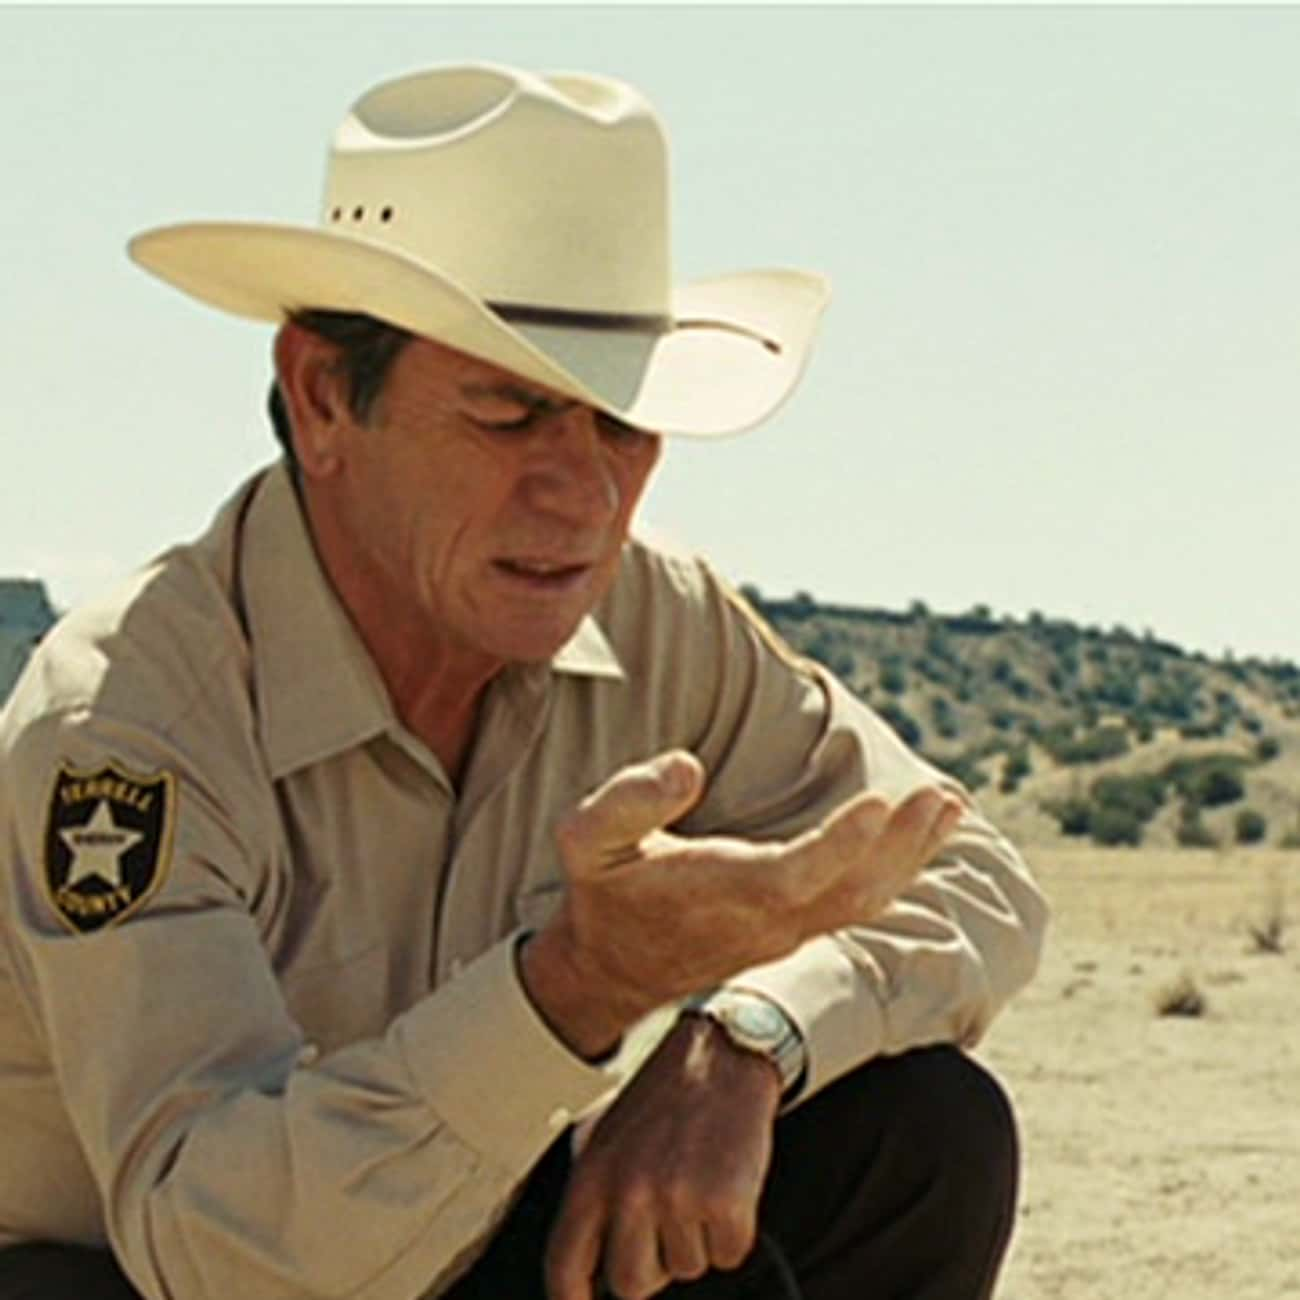 Don't Blame Him is listed (or ranked) 1 on the list The Most Memorable Quotes From 'No Country for Old Men'